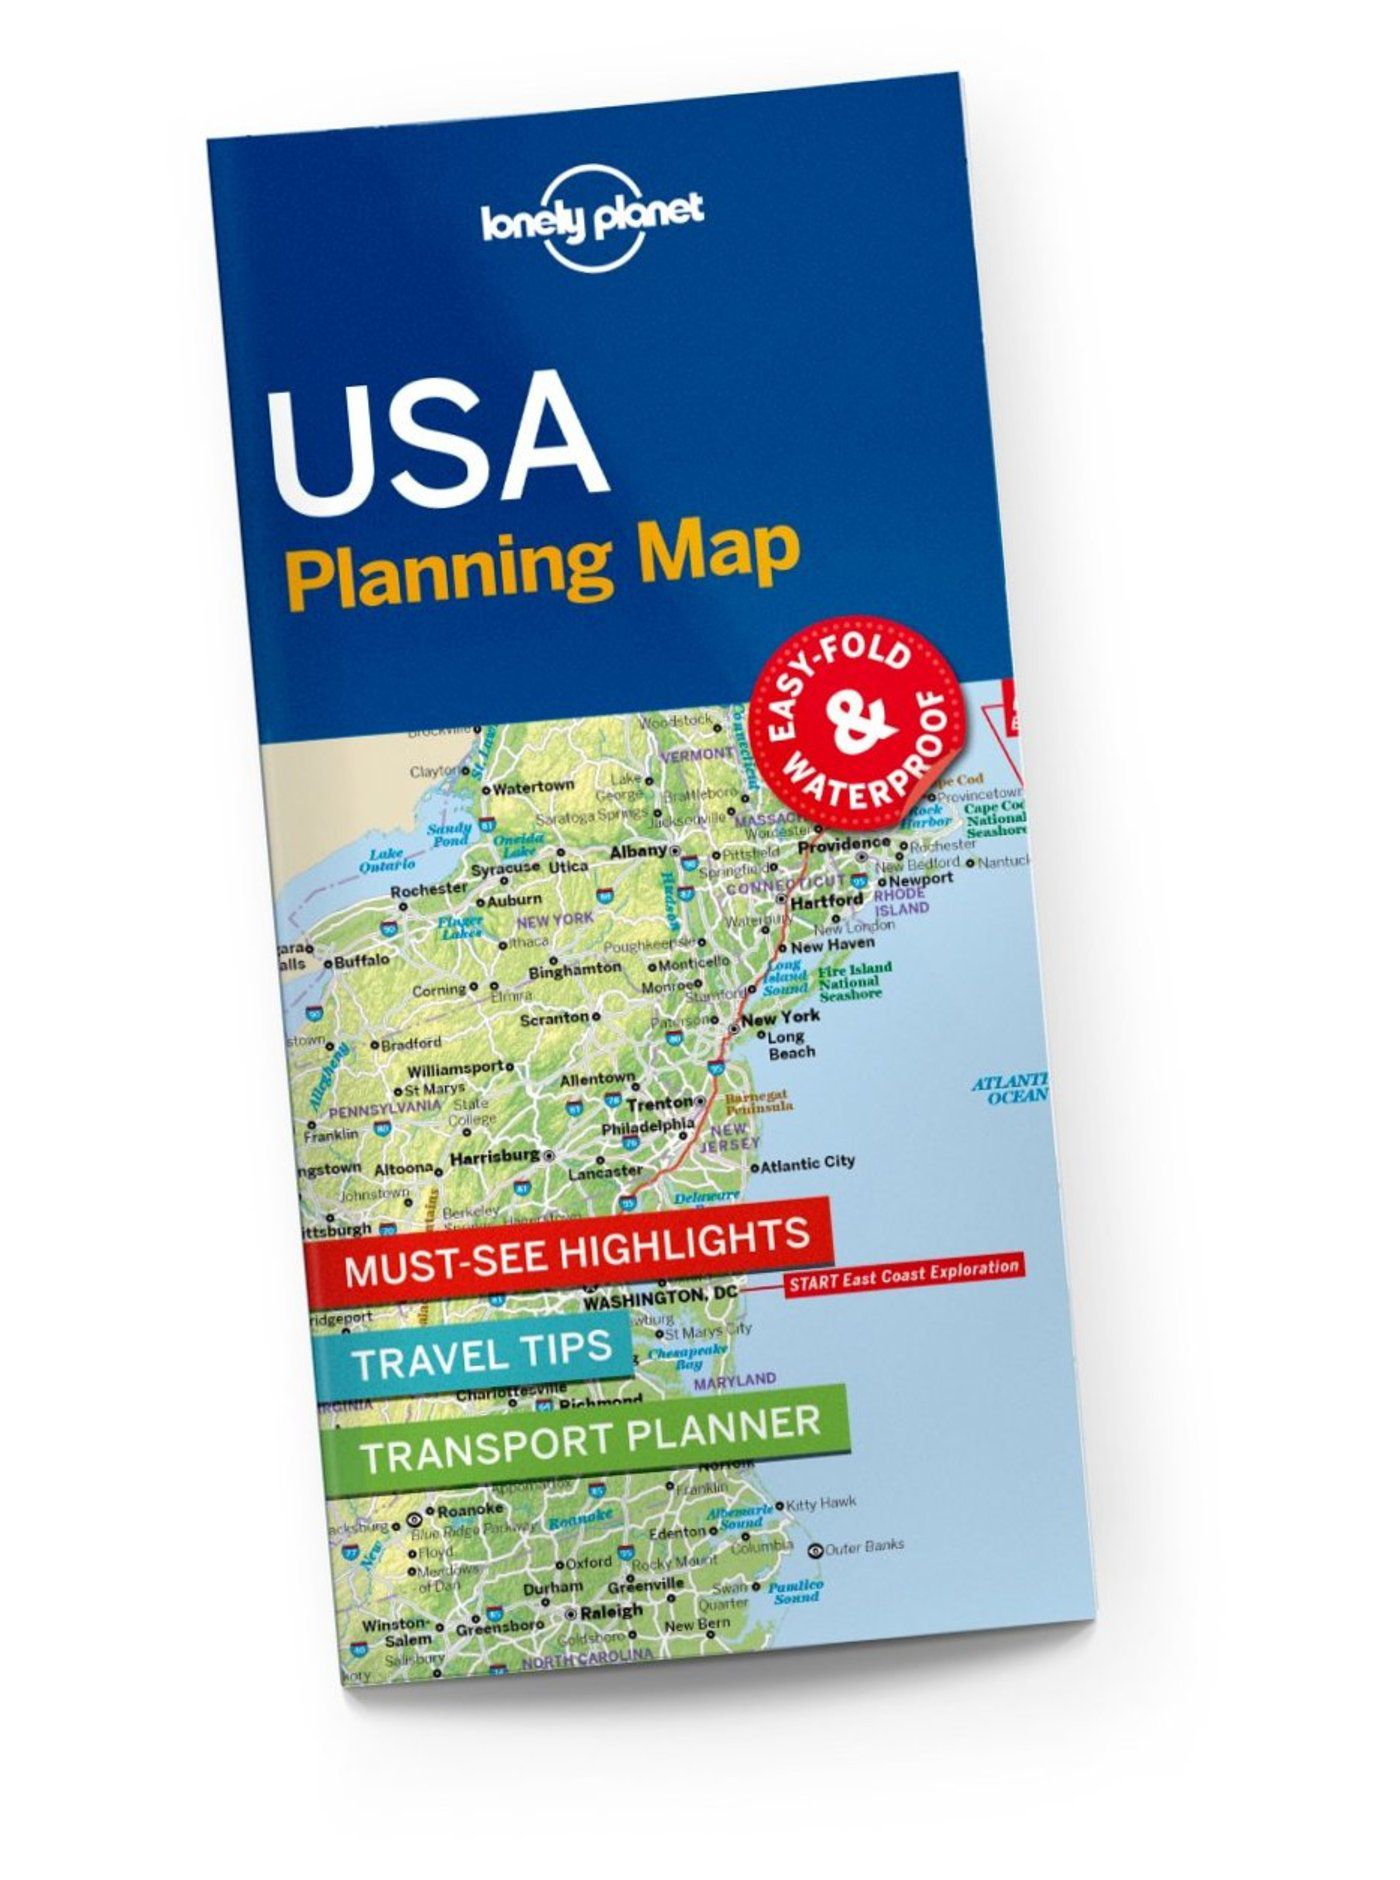 USA Planning Map - Lonely Planet Shop - Lonely Planet US